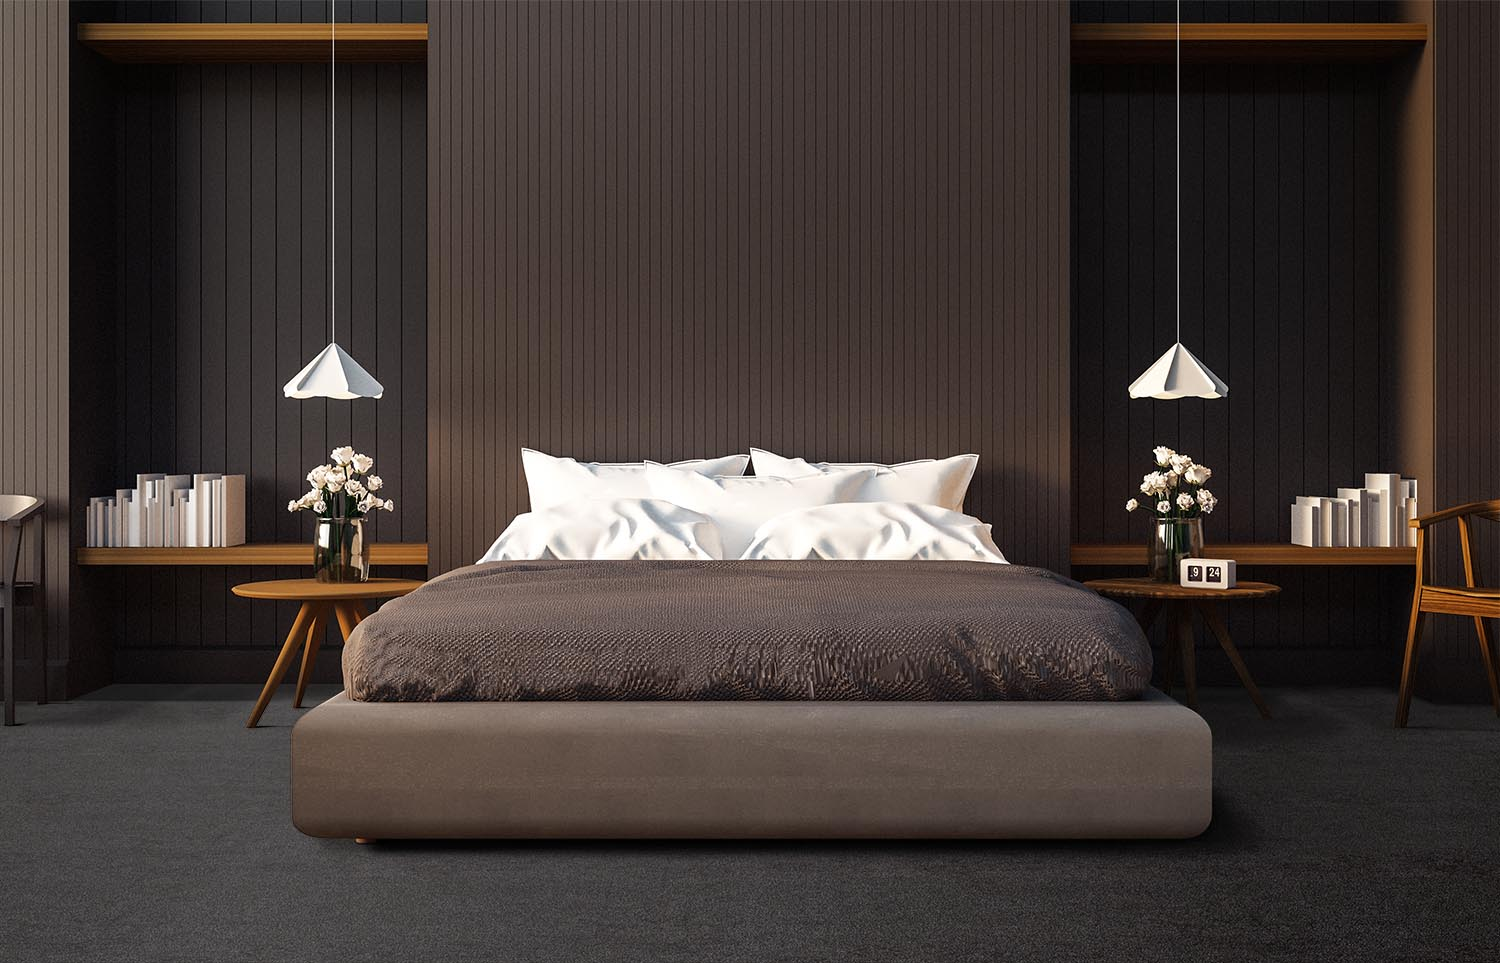 Softology - S201 - Abyss contemporary bedroom